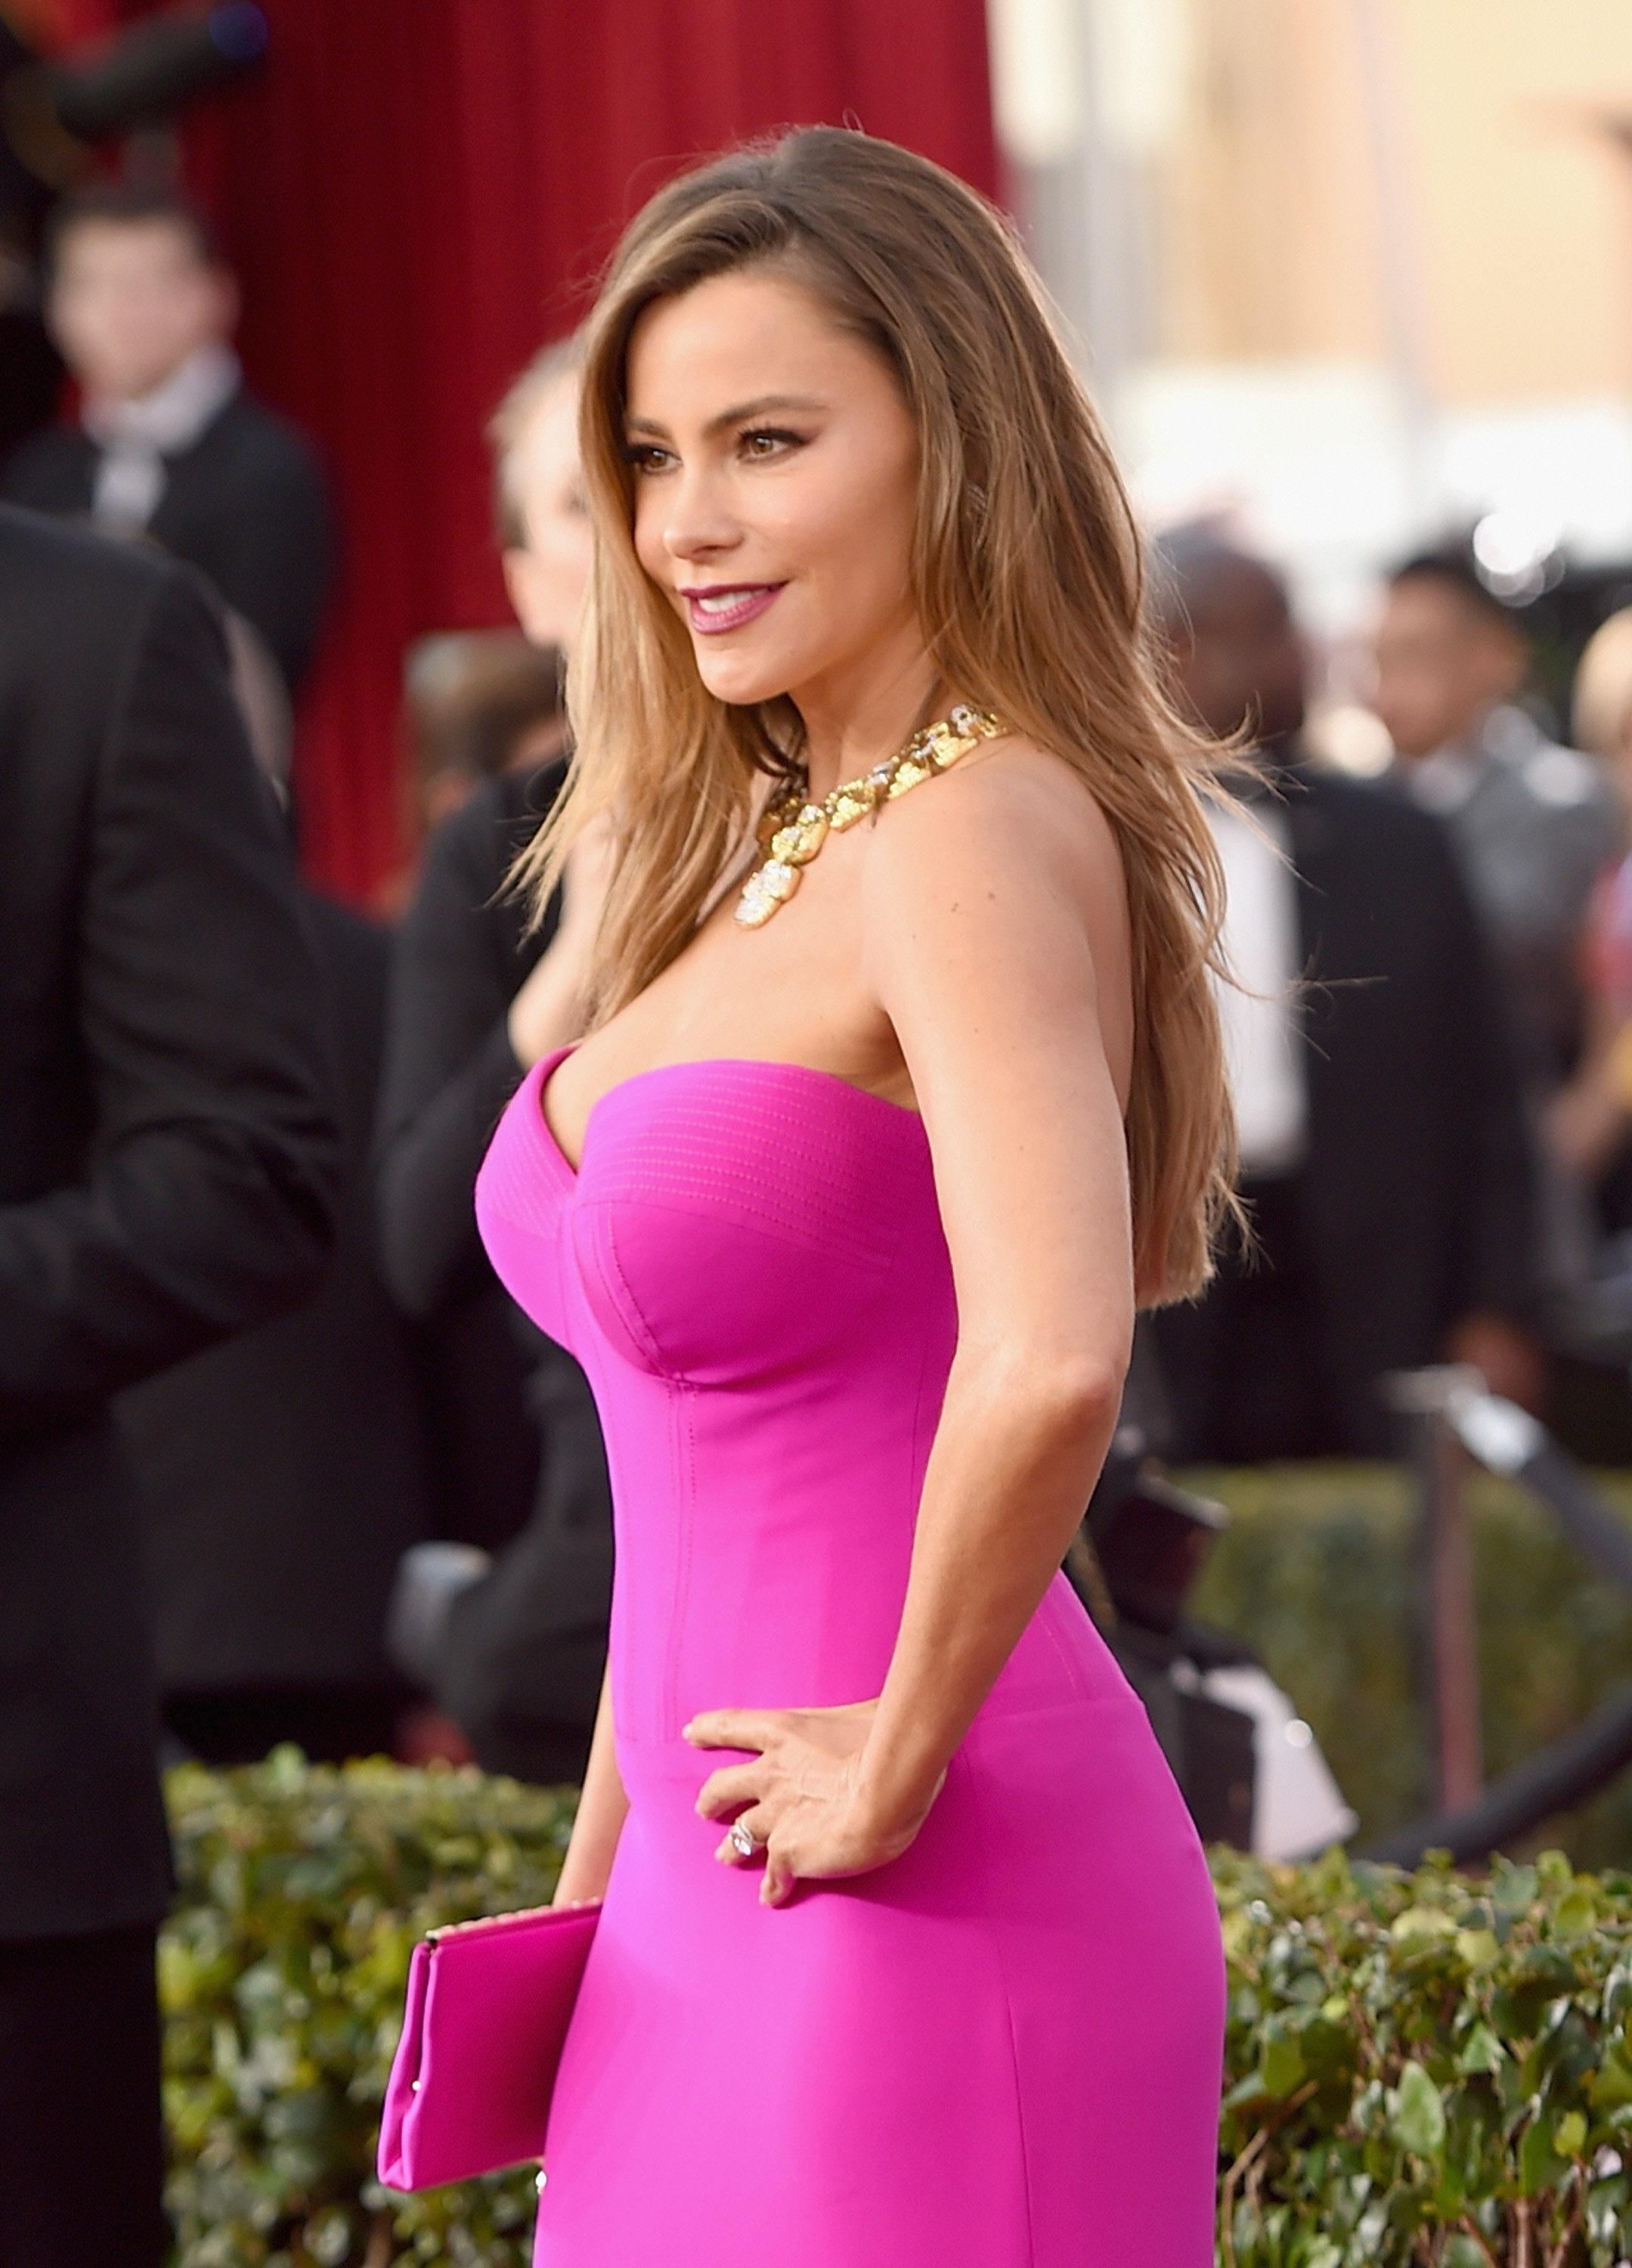 Sexy Sofia Vergara Pictures in a Pink Gown - Sexy Actress Pictures | Hot Actress Pictures - ActressSnaps.com